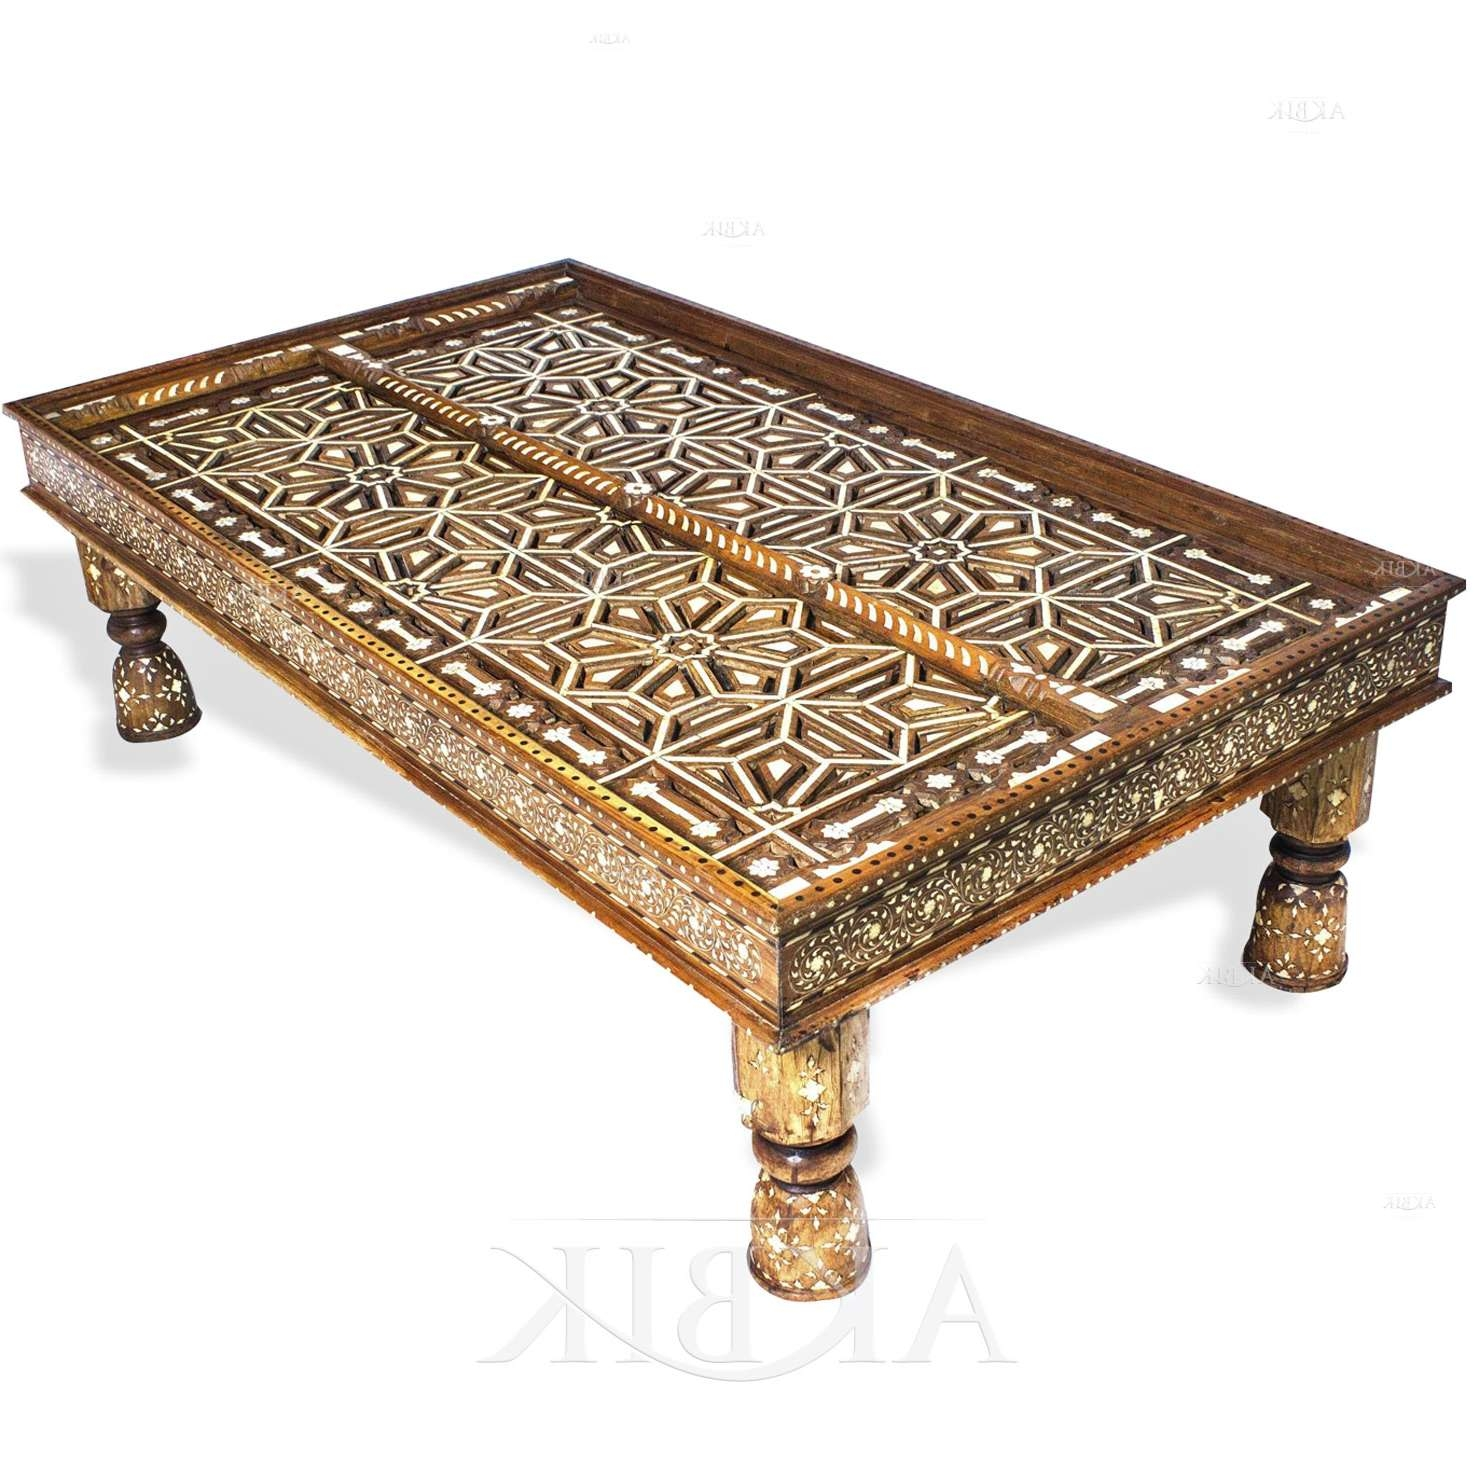 Mediterranean, Levantine & Syrian Furniture Inlaid With Mother Of Within Newest Mother Of Pearl Coffee Tables (View 8 of 20)